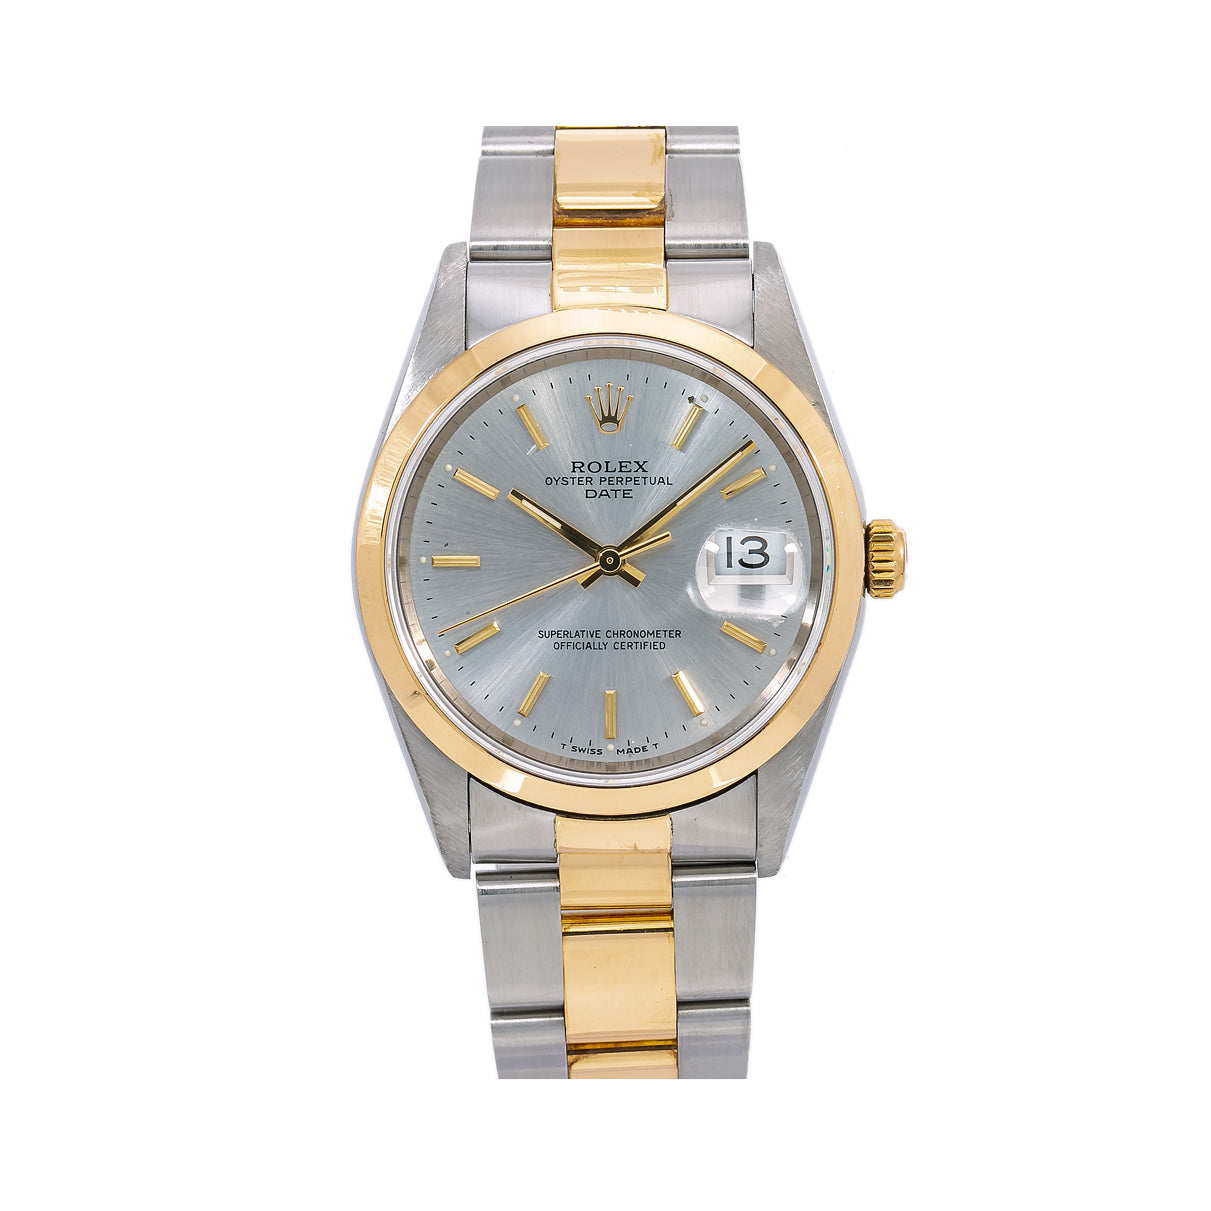 Rolex Oyster Perpetual Date 15203 34MM Silver Dial With Two Tone Oyster Bracelet